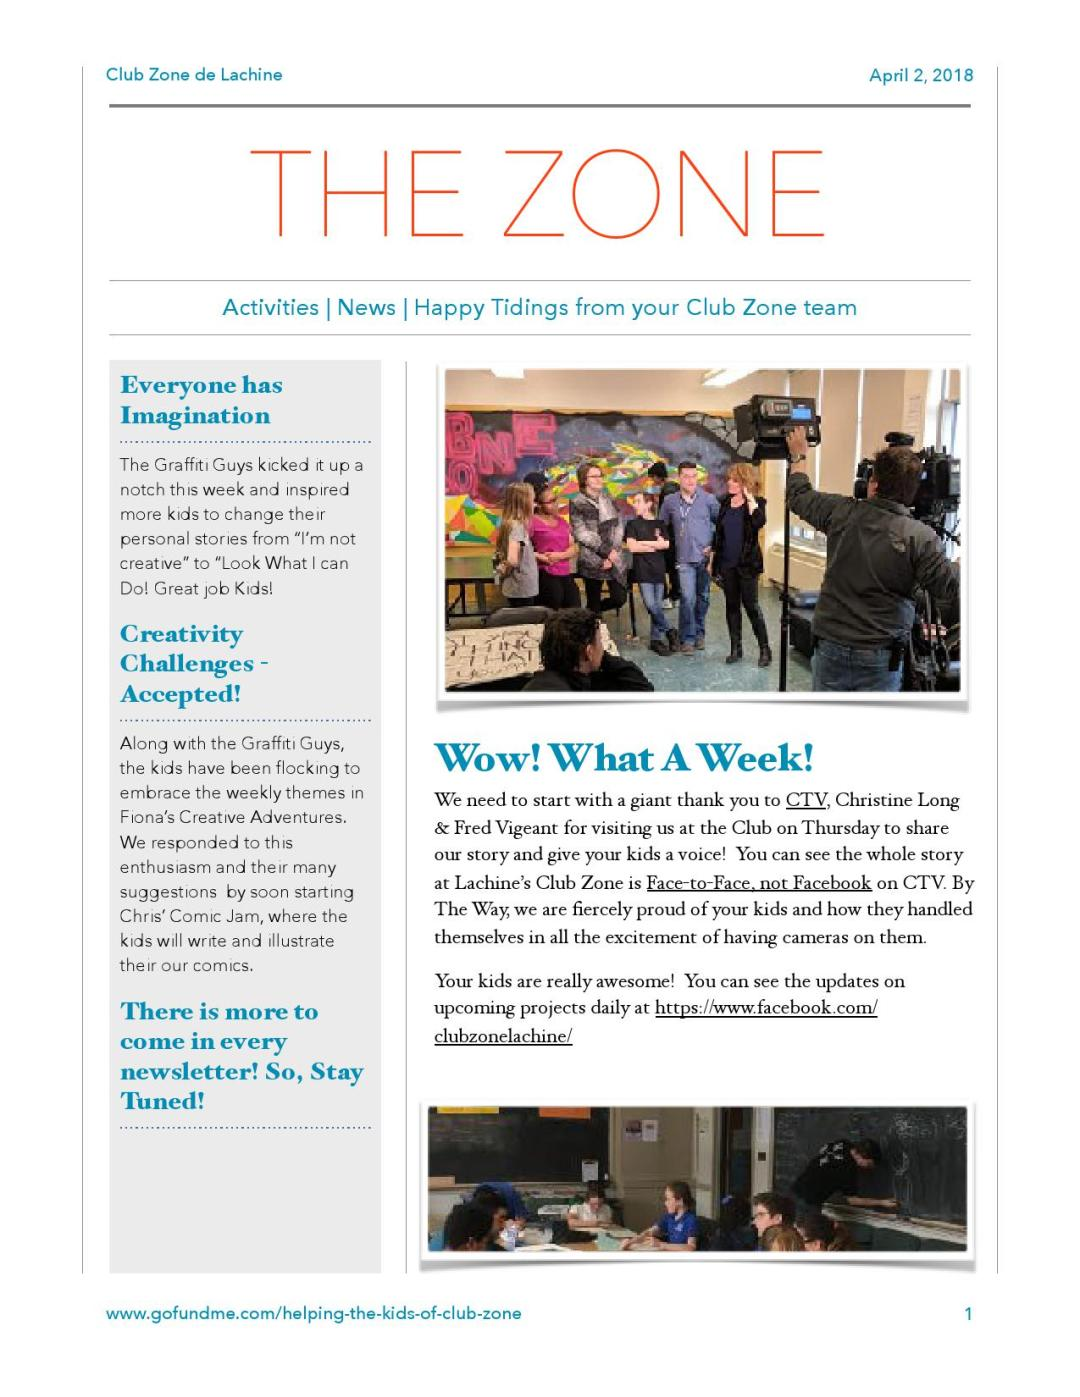 Club Zone Newsletter 2018-04-02_1